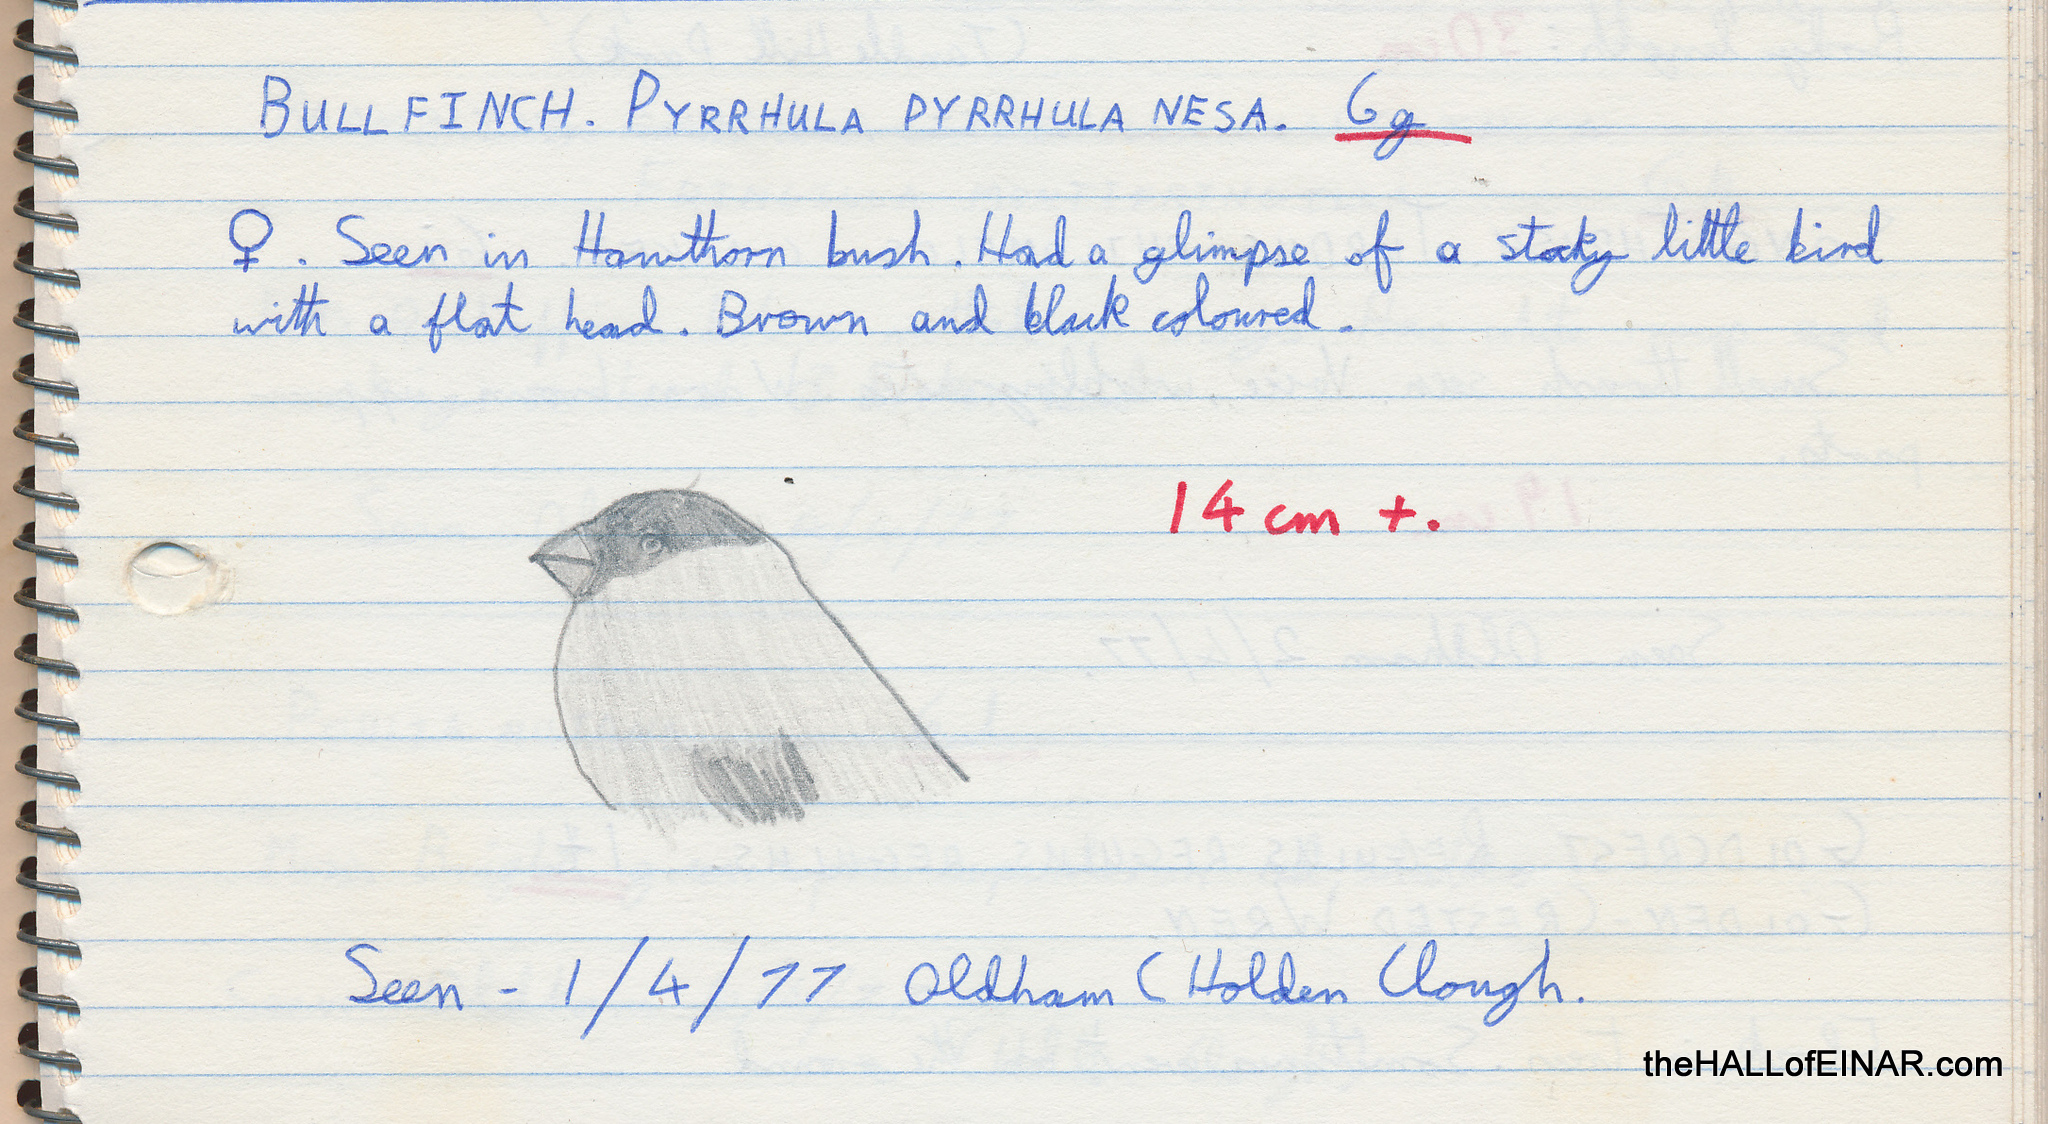 Bullfinch - 1970s Nature Notebooks - The Hall of Einar